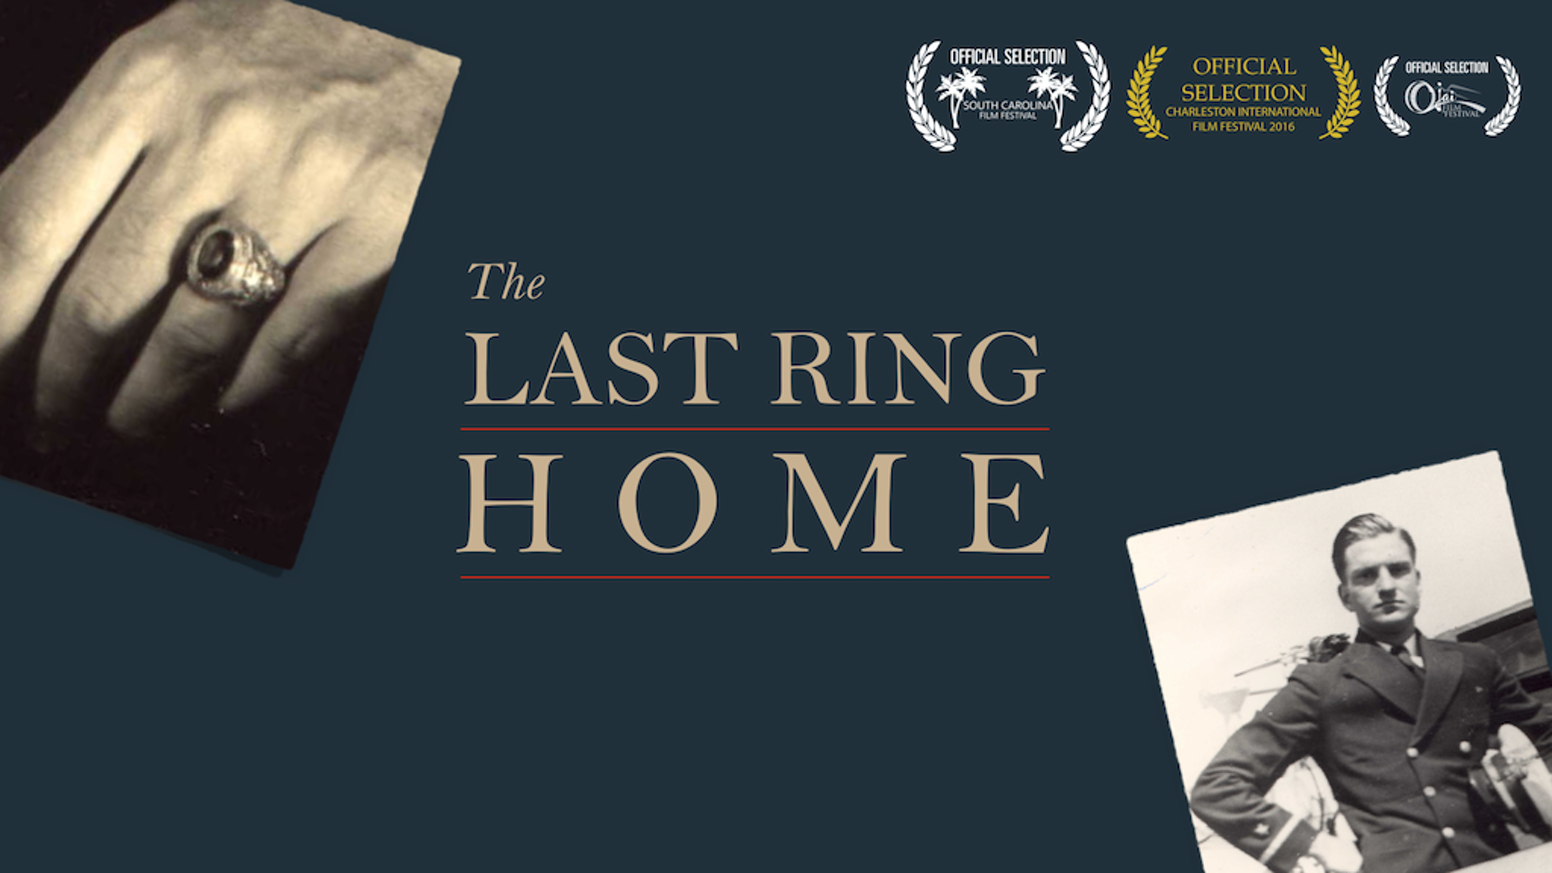 The award-winning film is now available on iTunes, Google Play and YOUTUBE! It's now on HistoryHit and will be aired over Memorial Day 2019 on PBS.